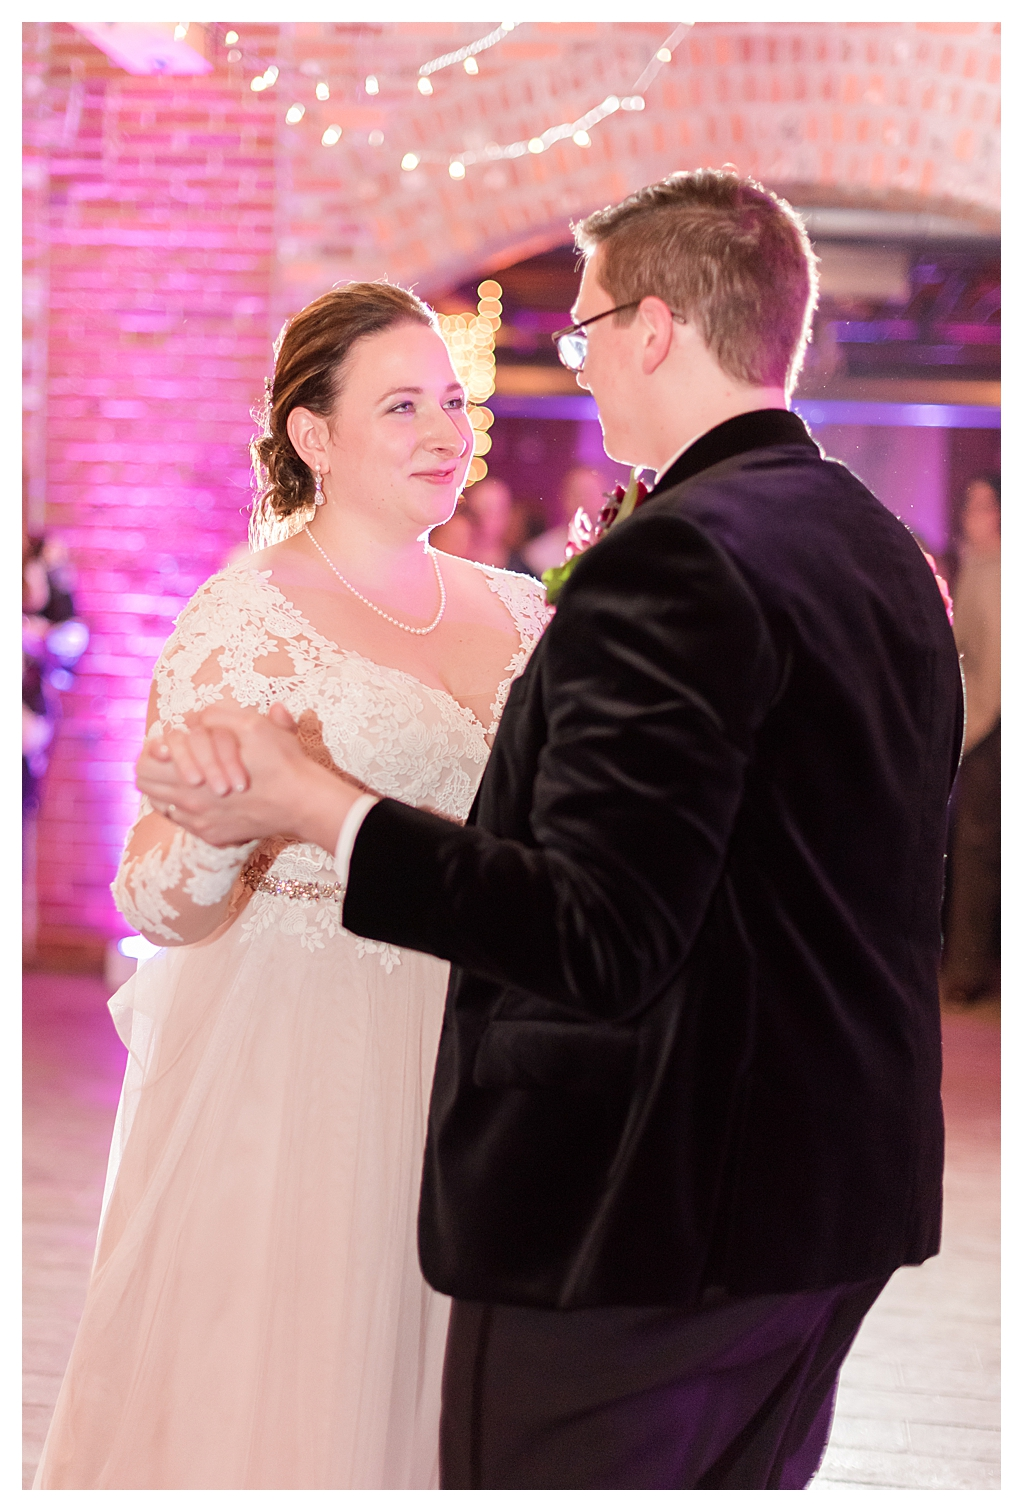 Winter Wedding at The Mill Top Indy Noblesville_1230.jpg